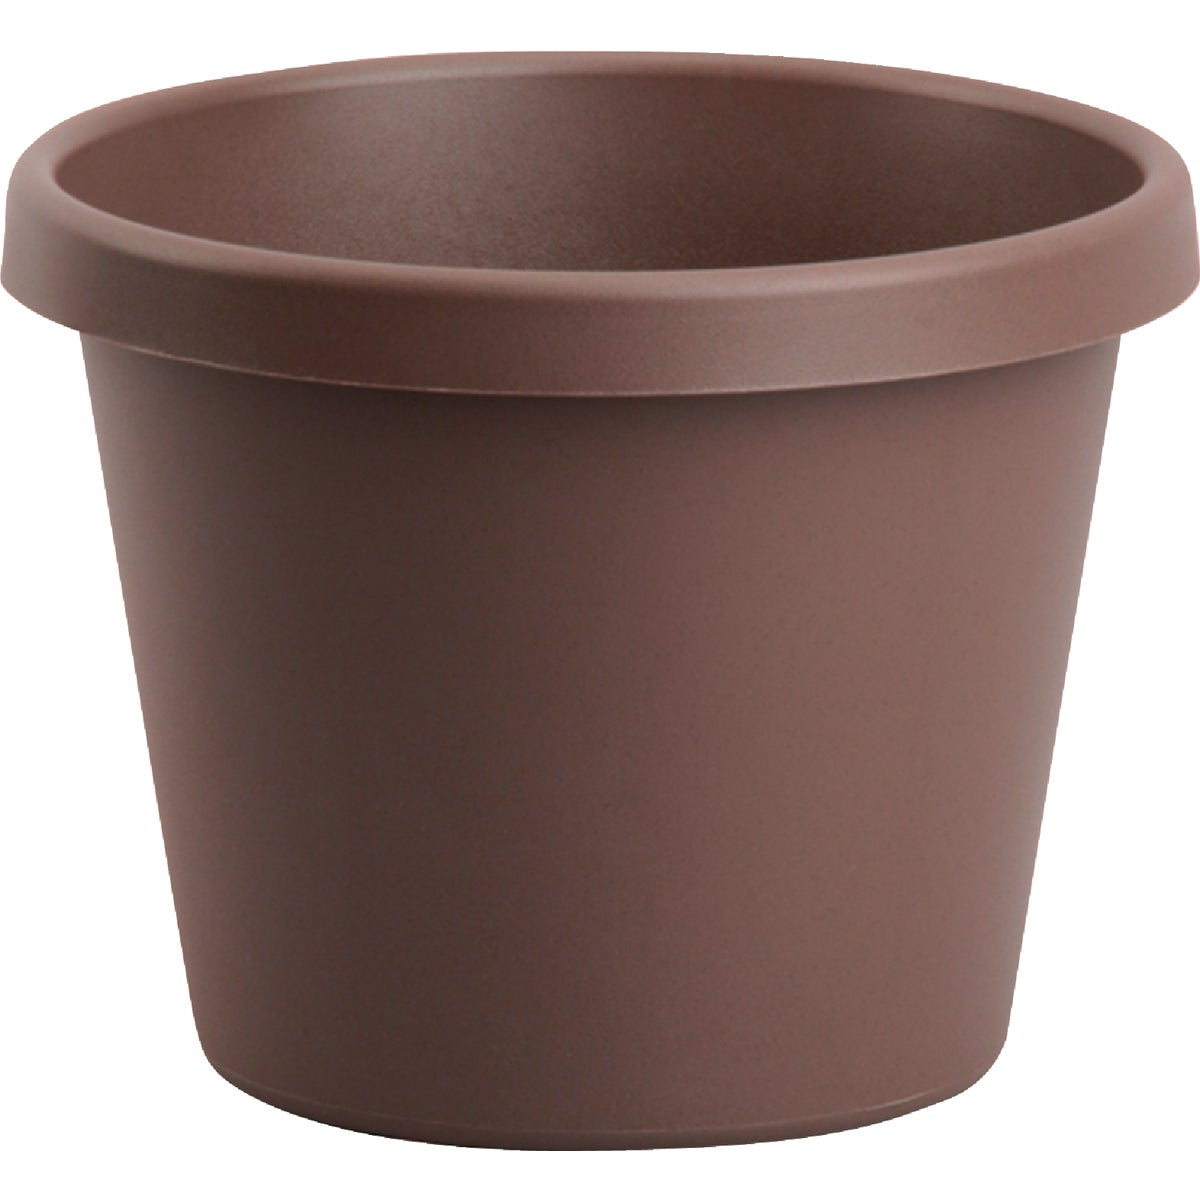 "14"" CHOCOLATE POLY POT - 20-50314CH by Fiskars Brands Inc"